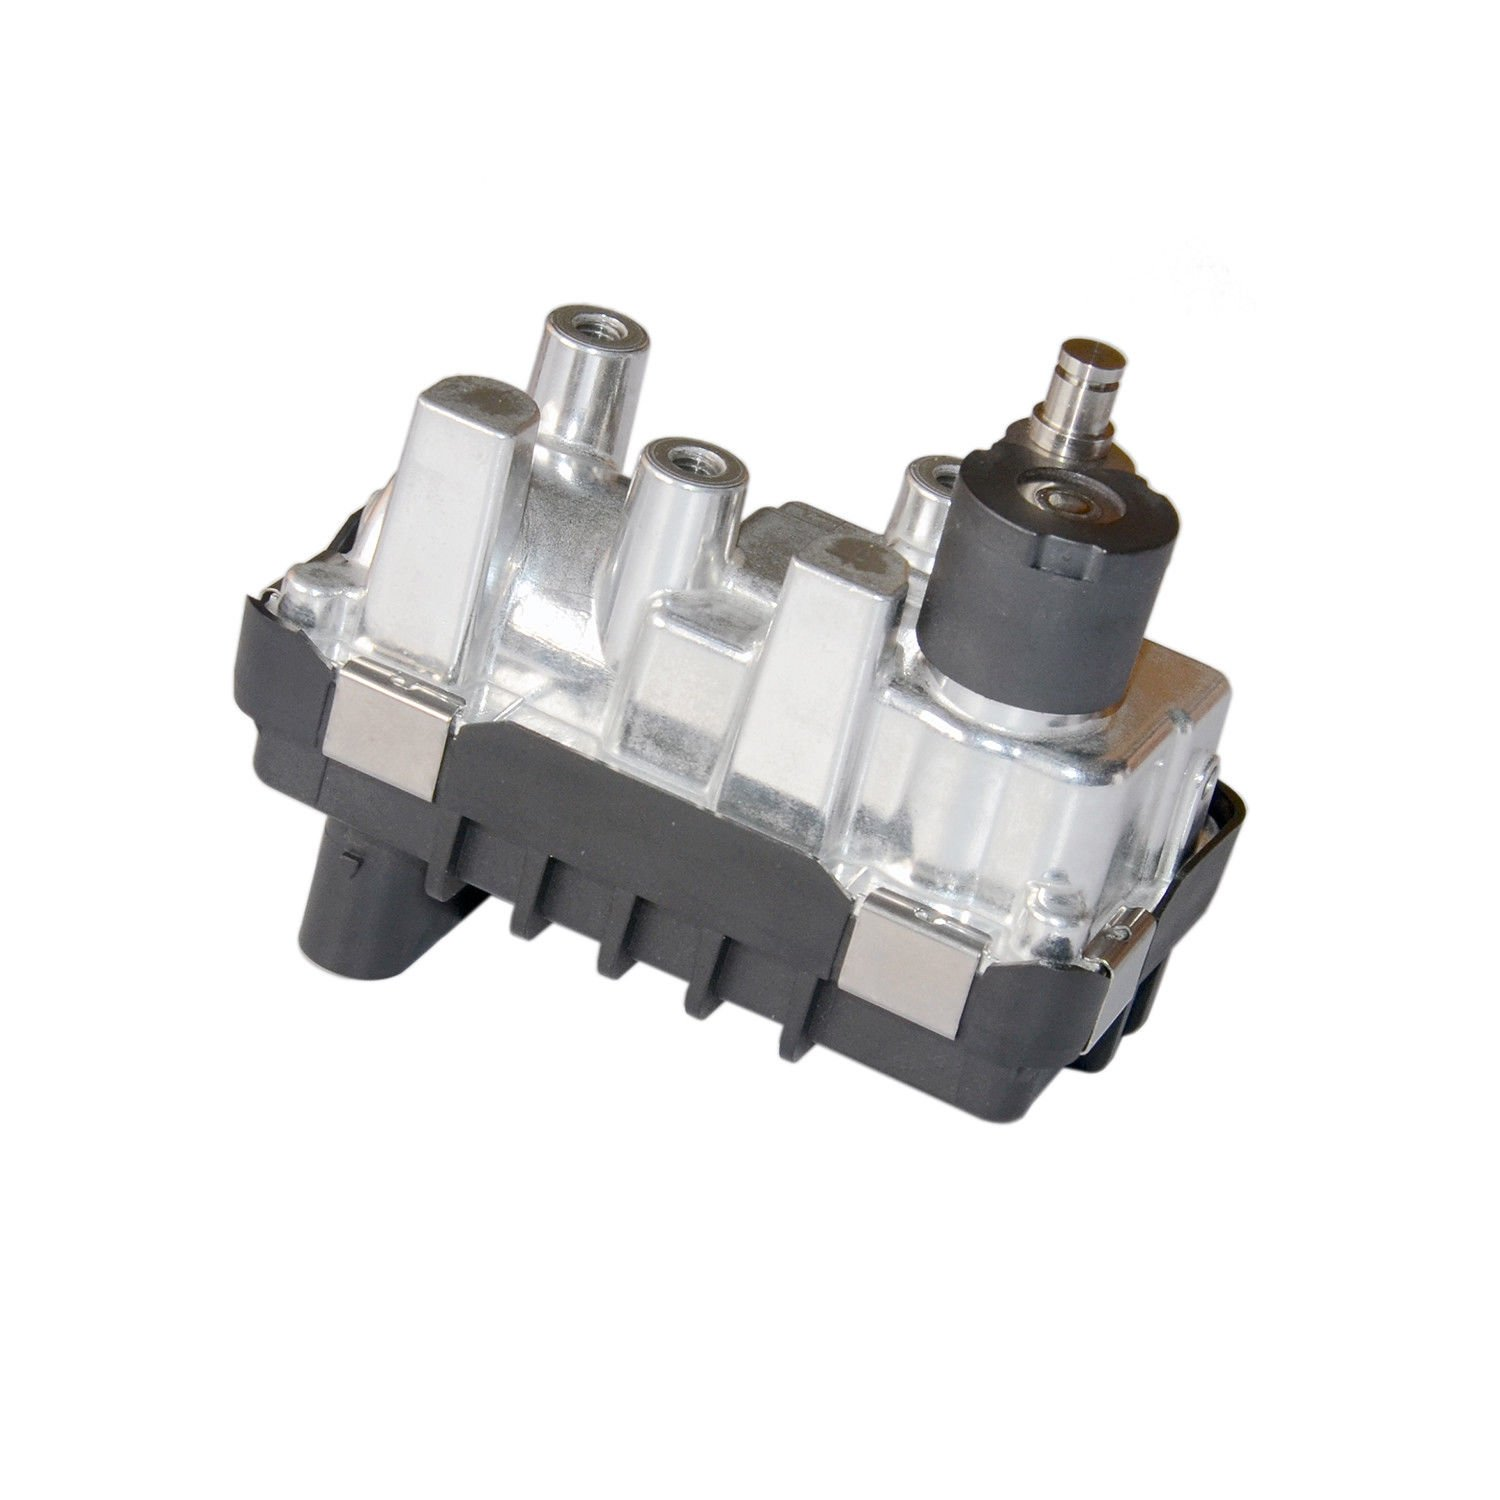 Turbo Electric Actuator 6NW008412 G-221 G-139 G-149 XSD